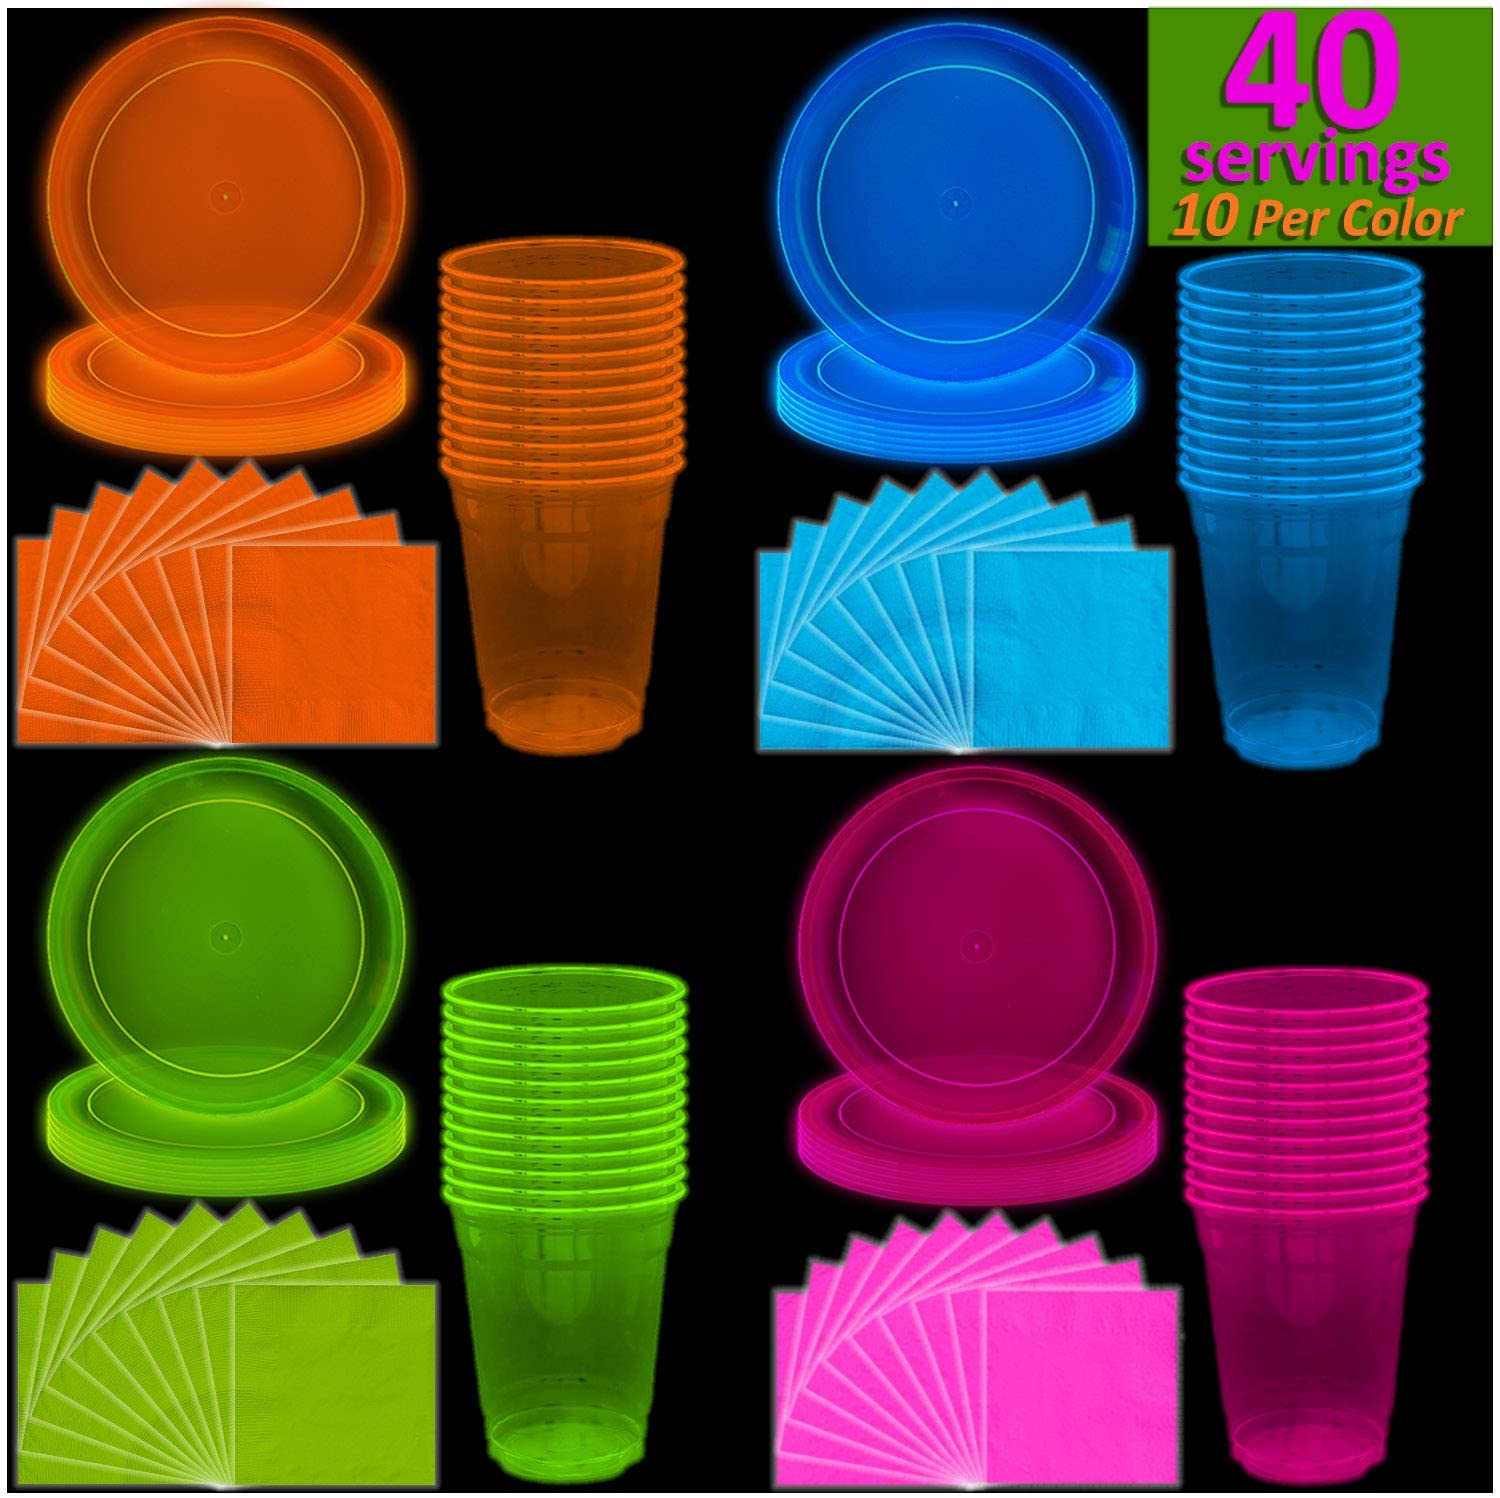 Neon Plates (9), Cups (12 oz) & Napkins - 40 Servings, 4 colors - Black Light Party Supplies, Glow-in-the-Dark with UV Light - for Birthdays, 80s Theme, Fiesta, clubs